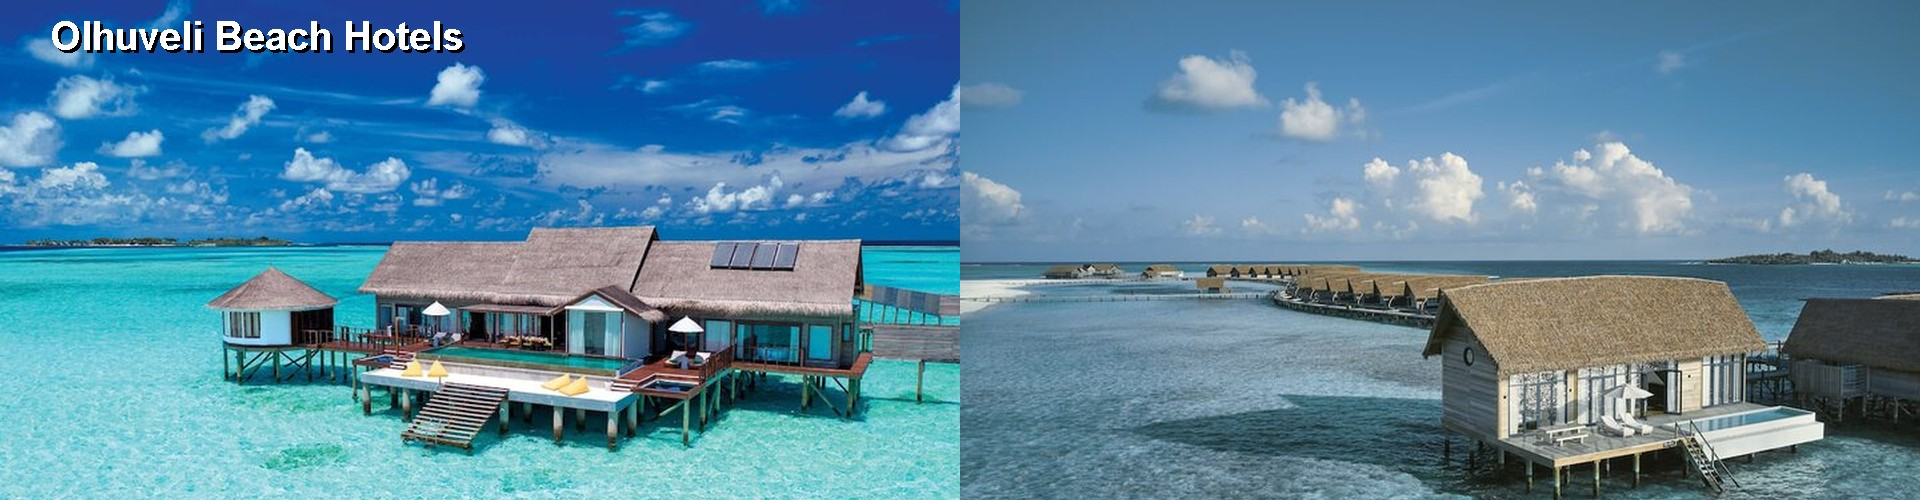 5 Best Hotels near Olhuveli Beach